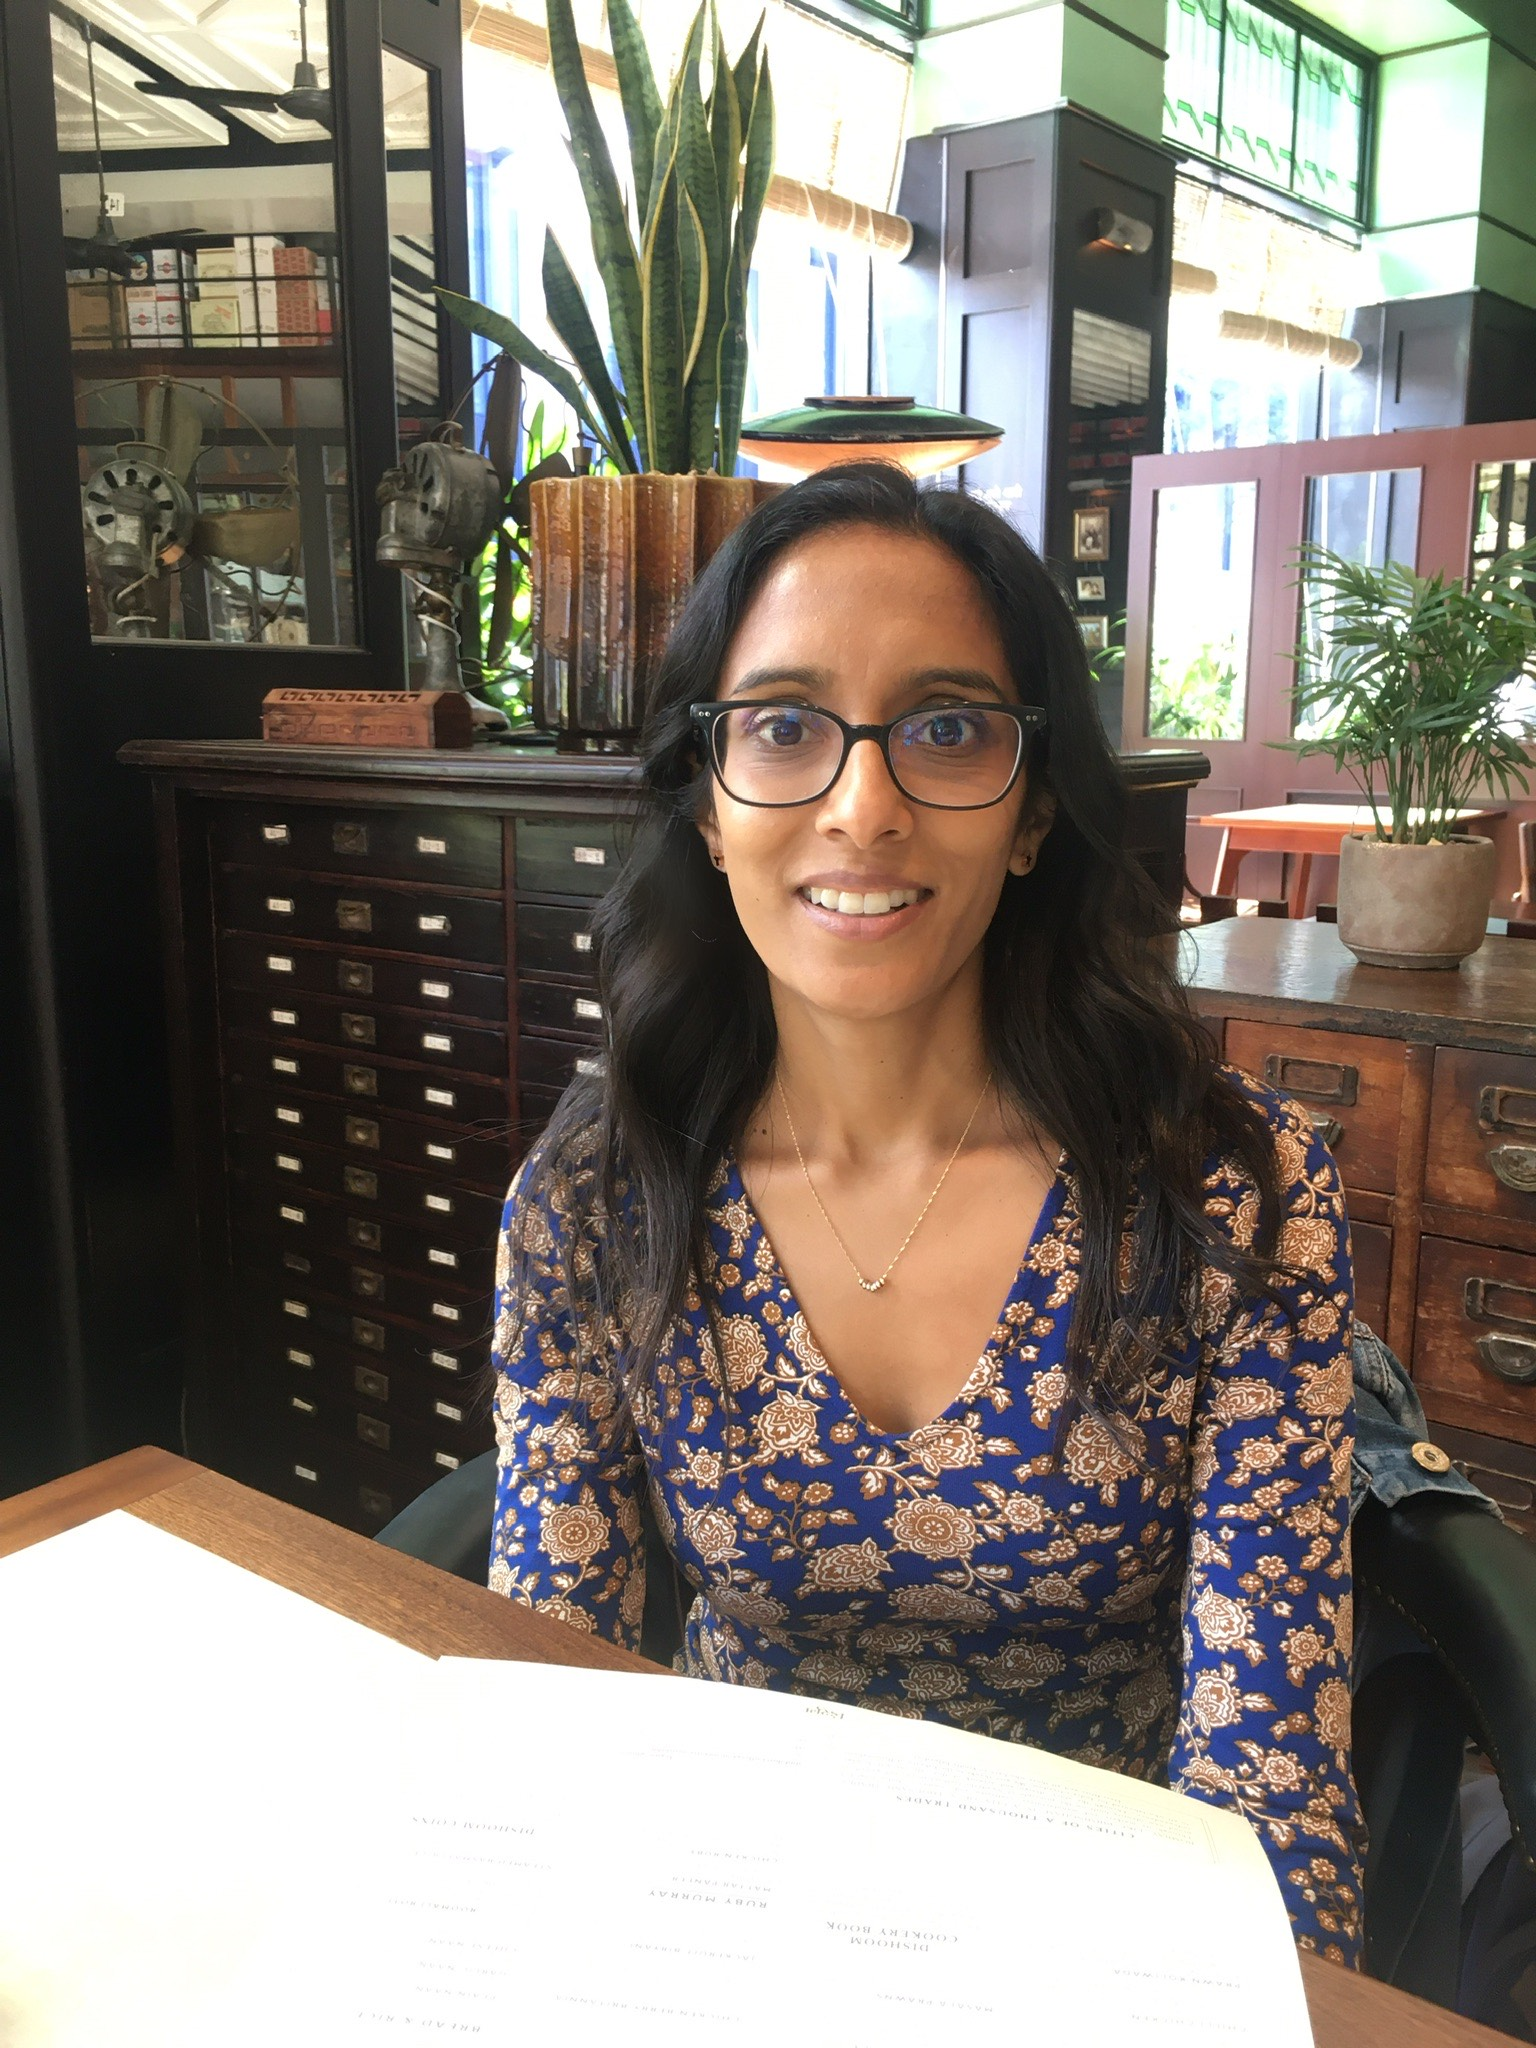 Interview with Anupa Roper